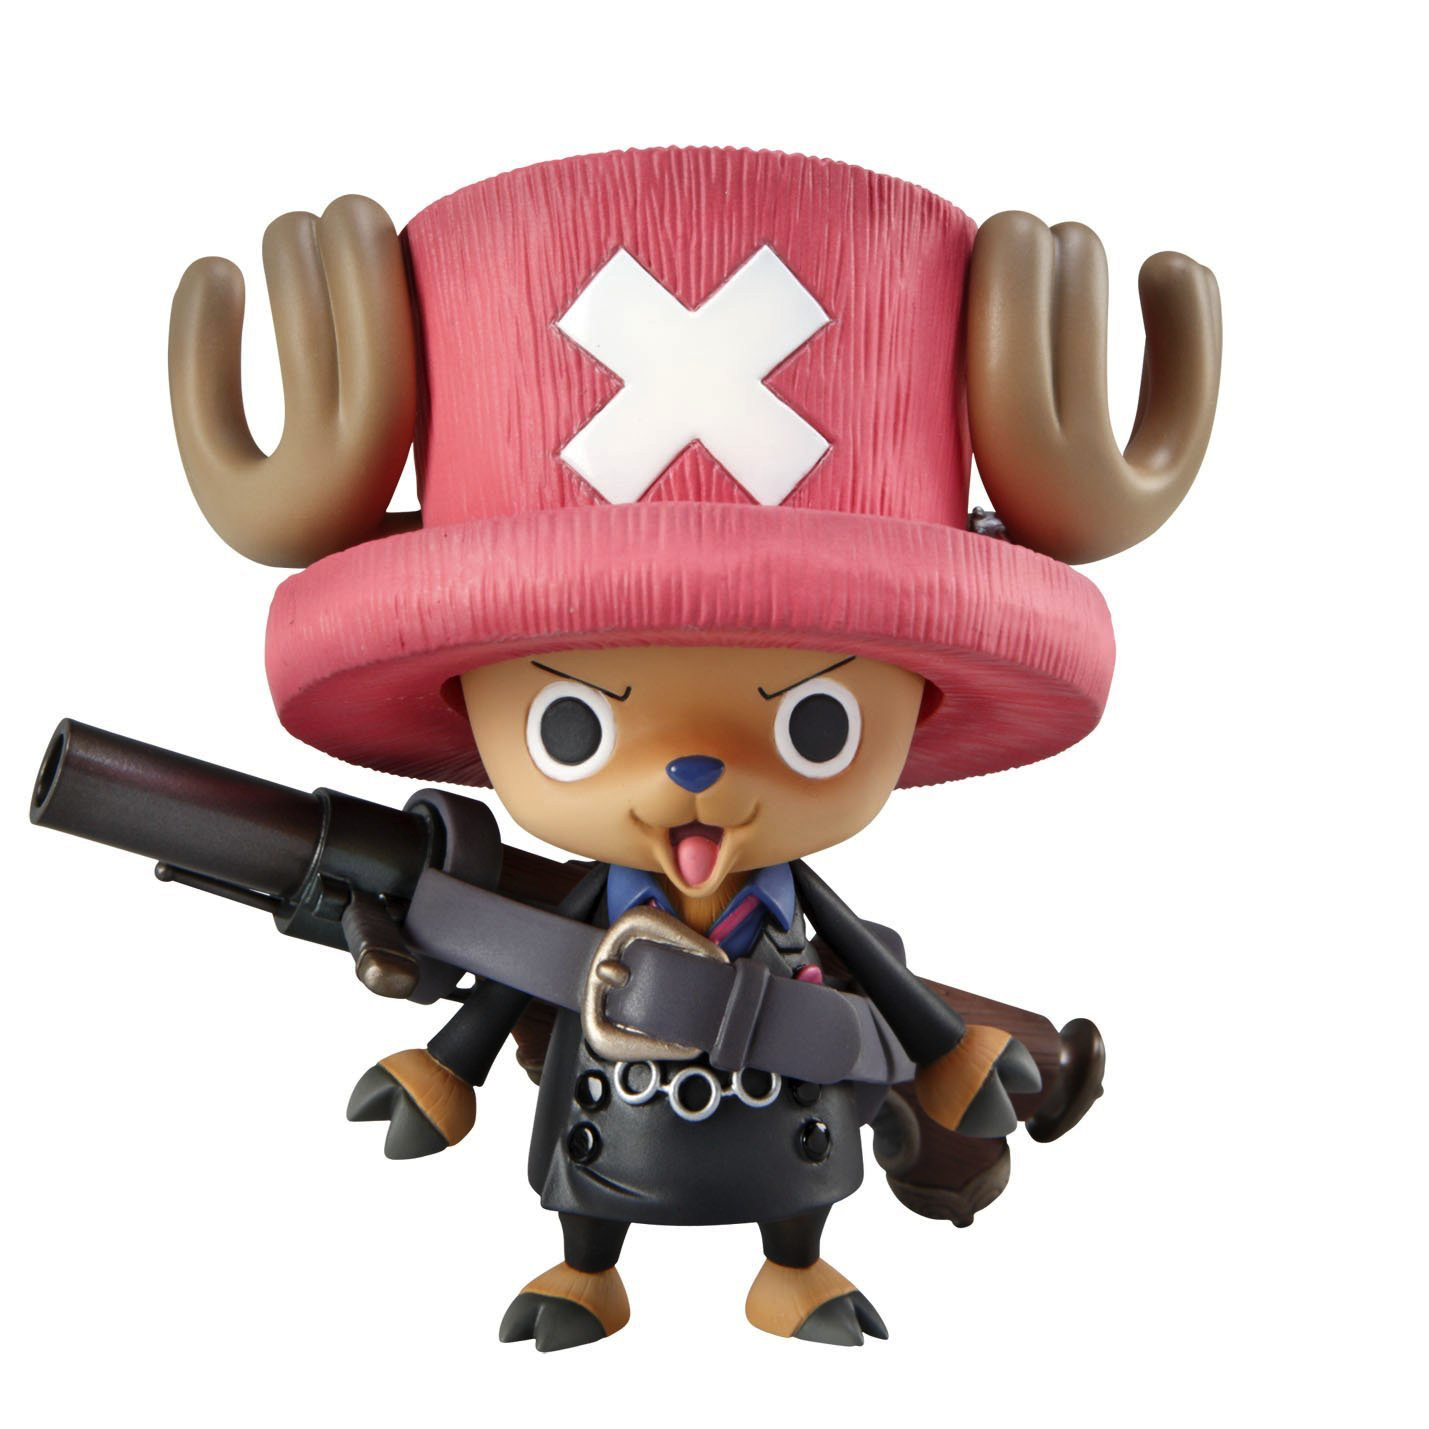 MegaHouse One Piece POP Strong Edition Tony-Tony Chopper Ver.2 1 8 Figure